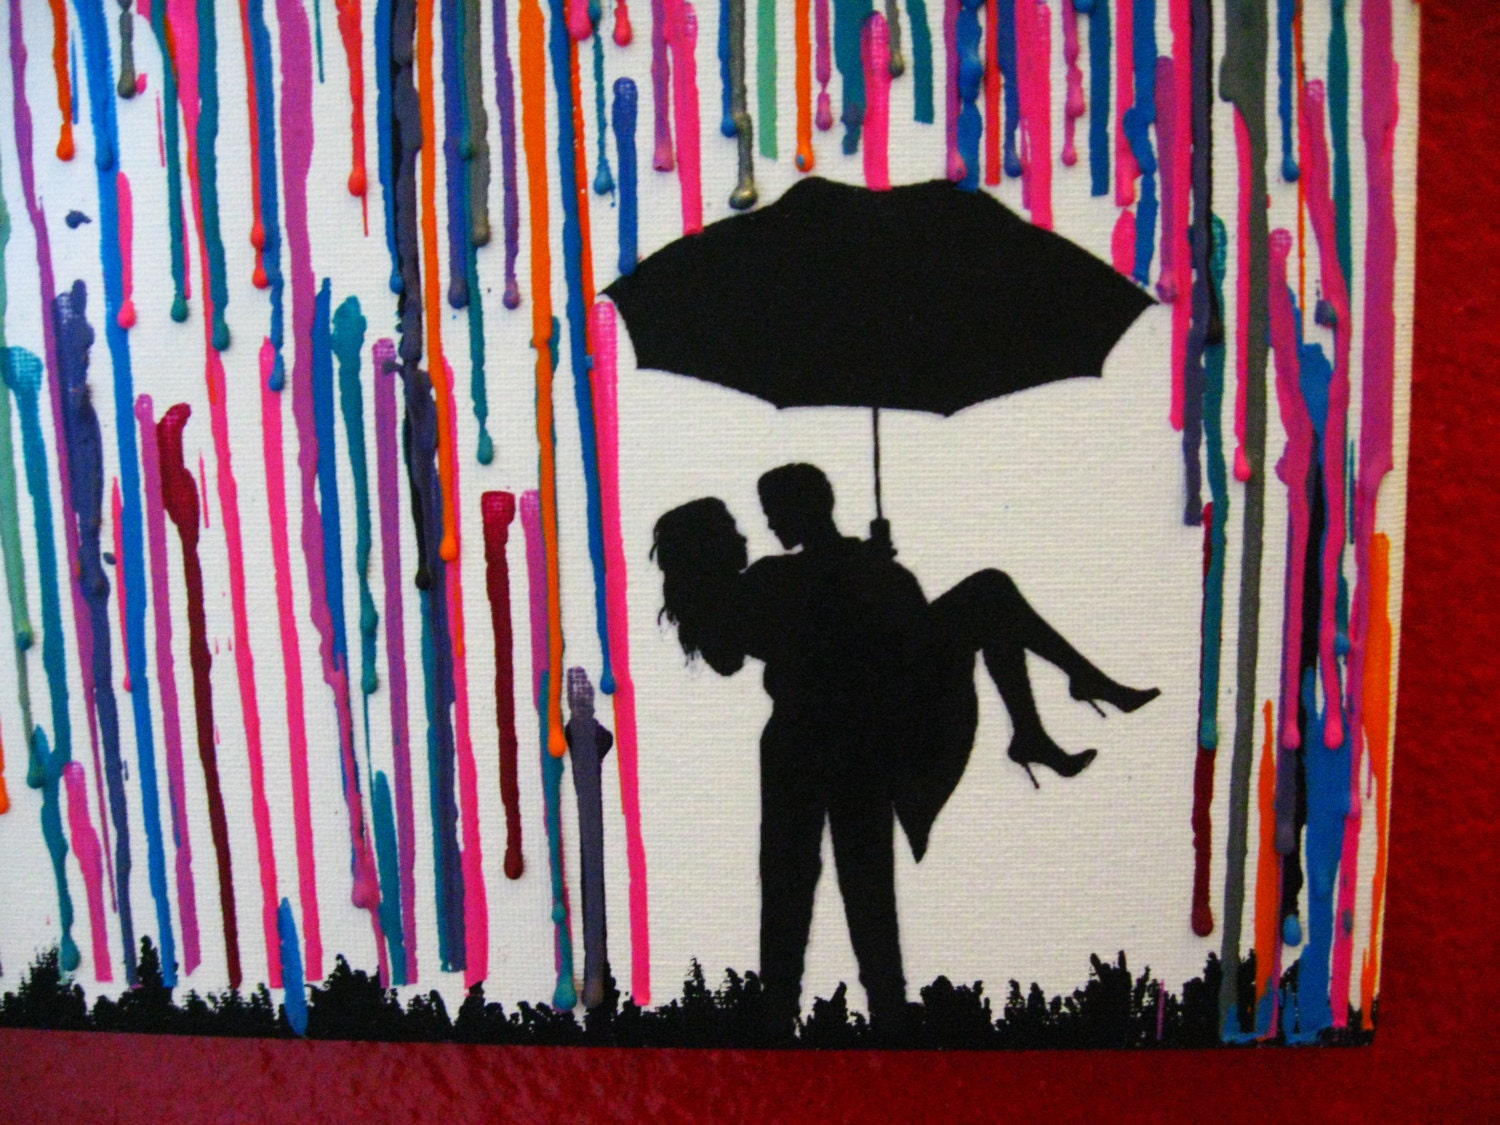 Handmade Encaustic Wax Painting Couple in the rain by FembyDesignCouple Silhouette Umbrella Crayon Art